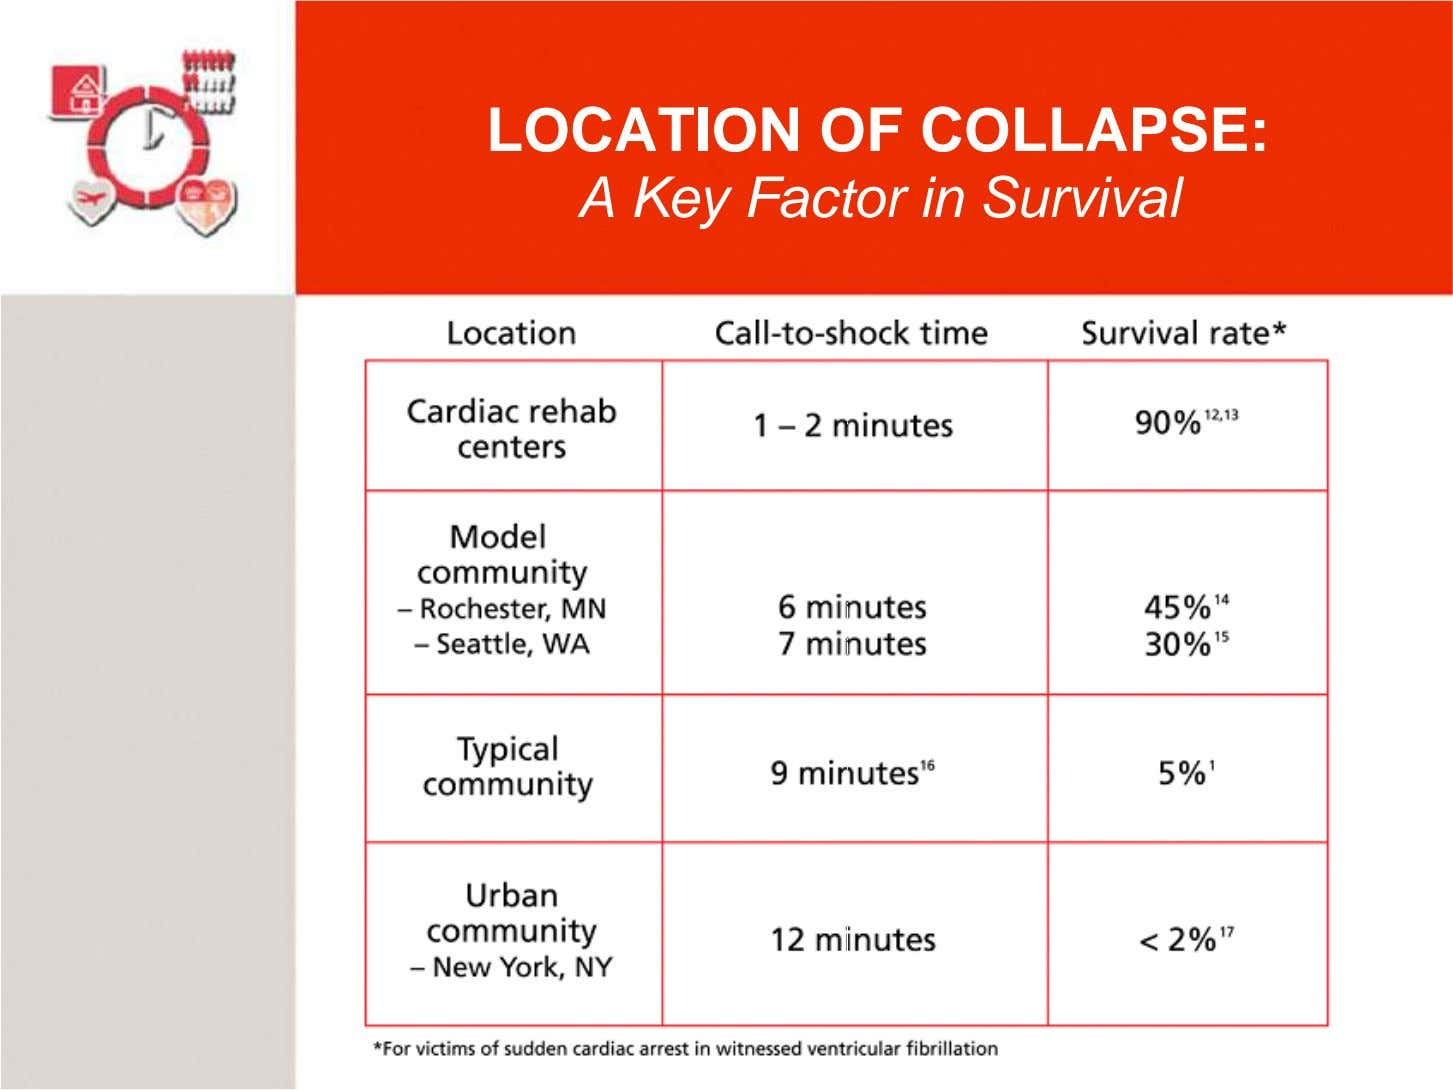 LOCATION OF COLLAPSE: A Key Factor in Survival